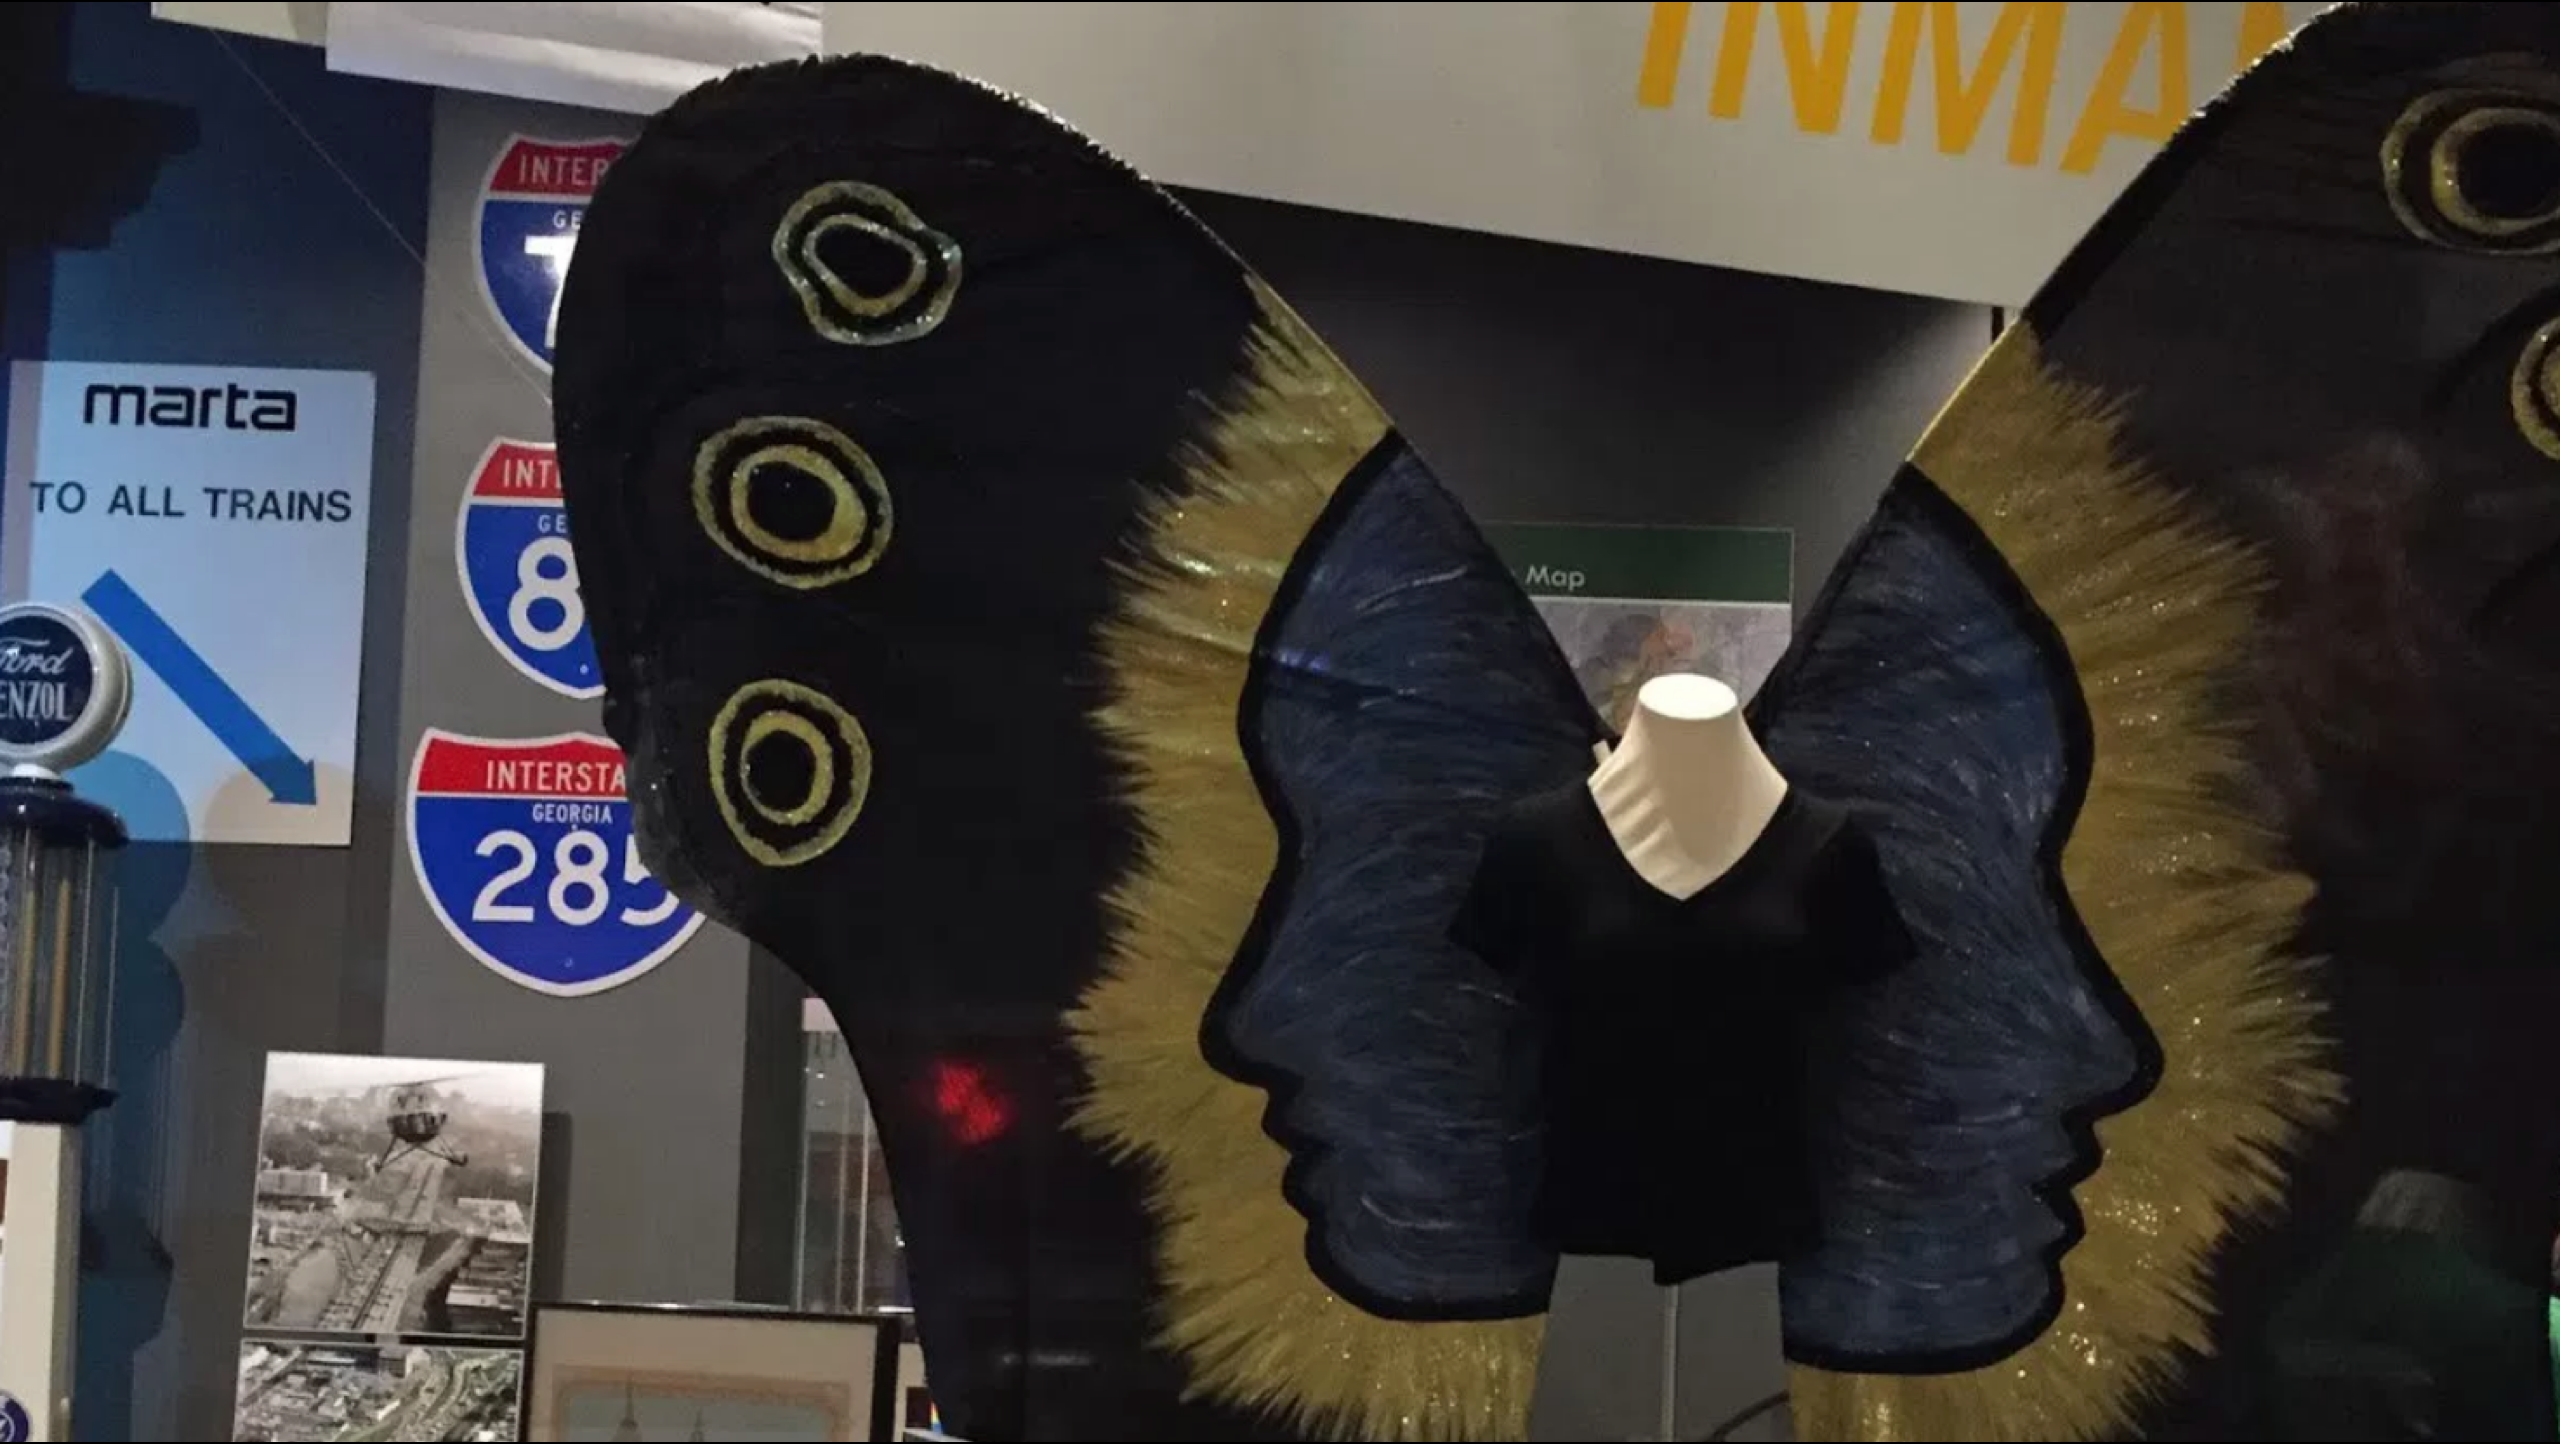 A piece of art takes up the entire composition. A mannequin bust (the type with just the torso) is dressed in a black v-neck tshirt with oversized dark butterfly wings. The wings depict two human faces in profile looking out from the body in blue. Each has a yellow aura around it which fades out to black. There are three yellow circles on the top wing tips. This piece of art is in an exhibition with a lot of other art just barely visible.